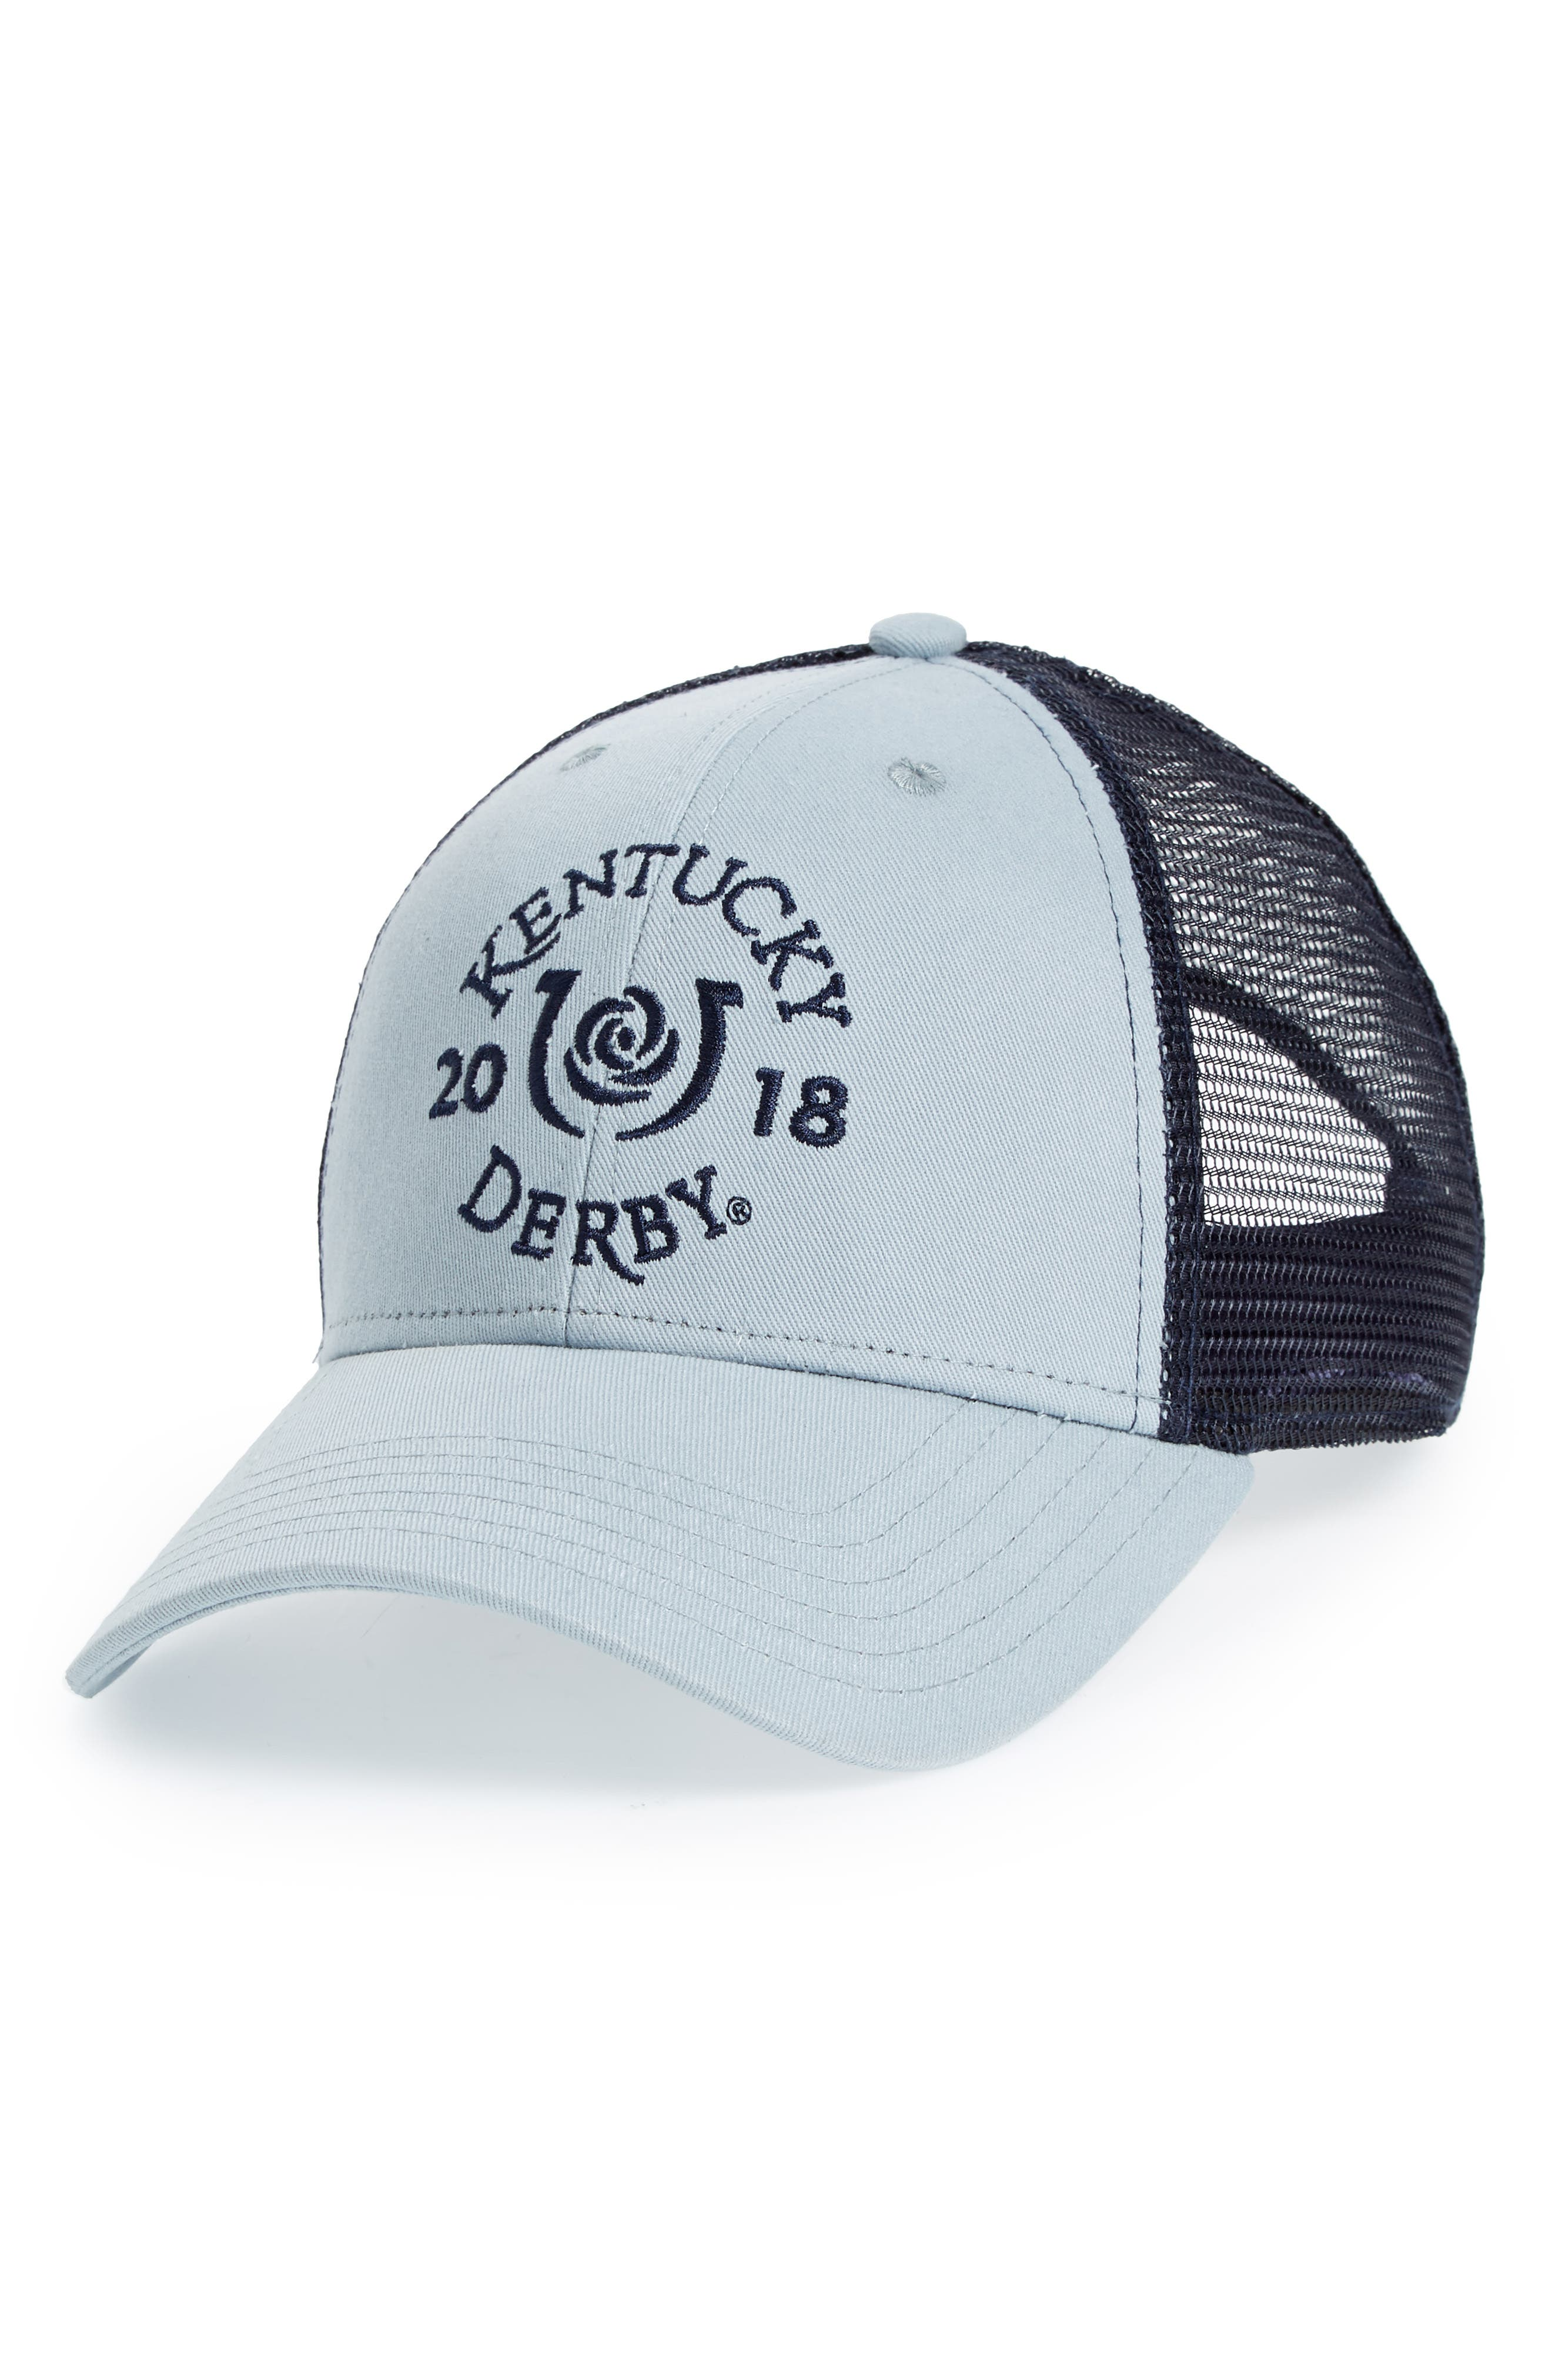 2018 Kentucky Derby<sup>®</sup> Garland of Roses Ball Cap,                             Main thumbnail 1, color,